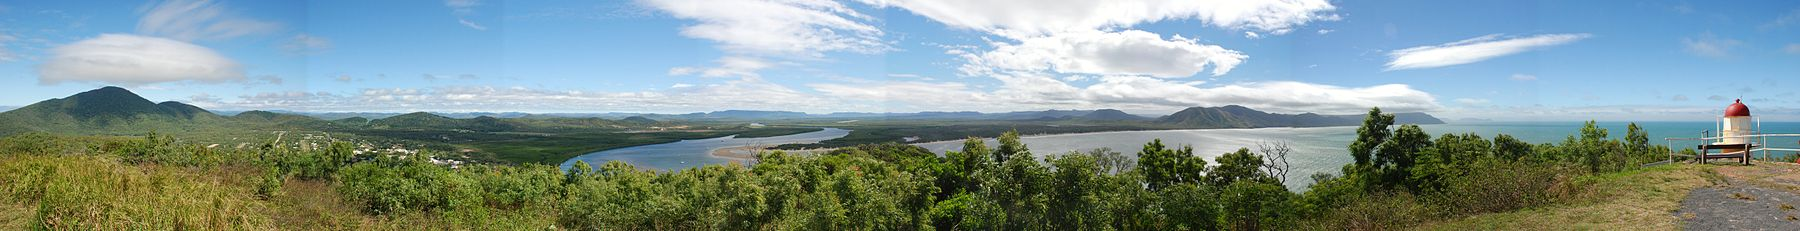 Cooktown Grassy Hill panorama.jpg